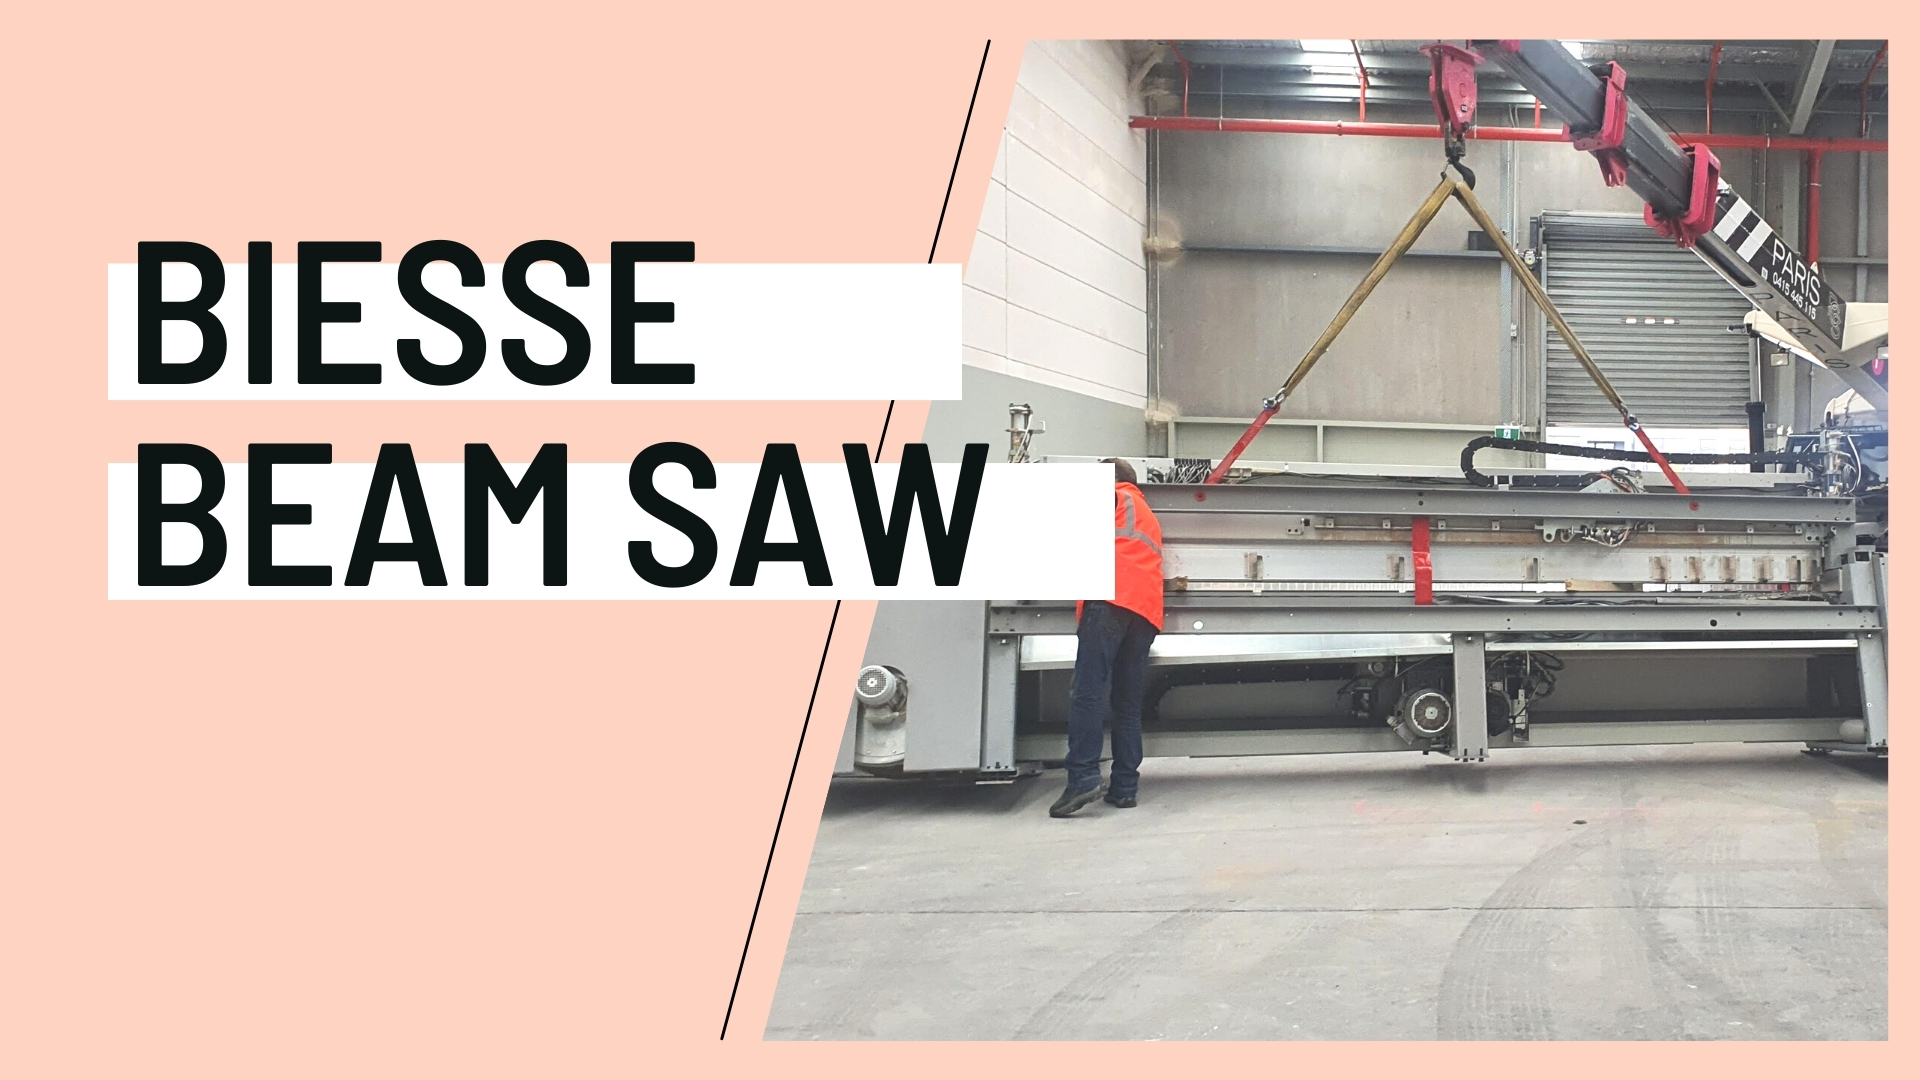 Biesse Beam Saw arriving at plywood supplier Plyco on the Mornington Peninsula